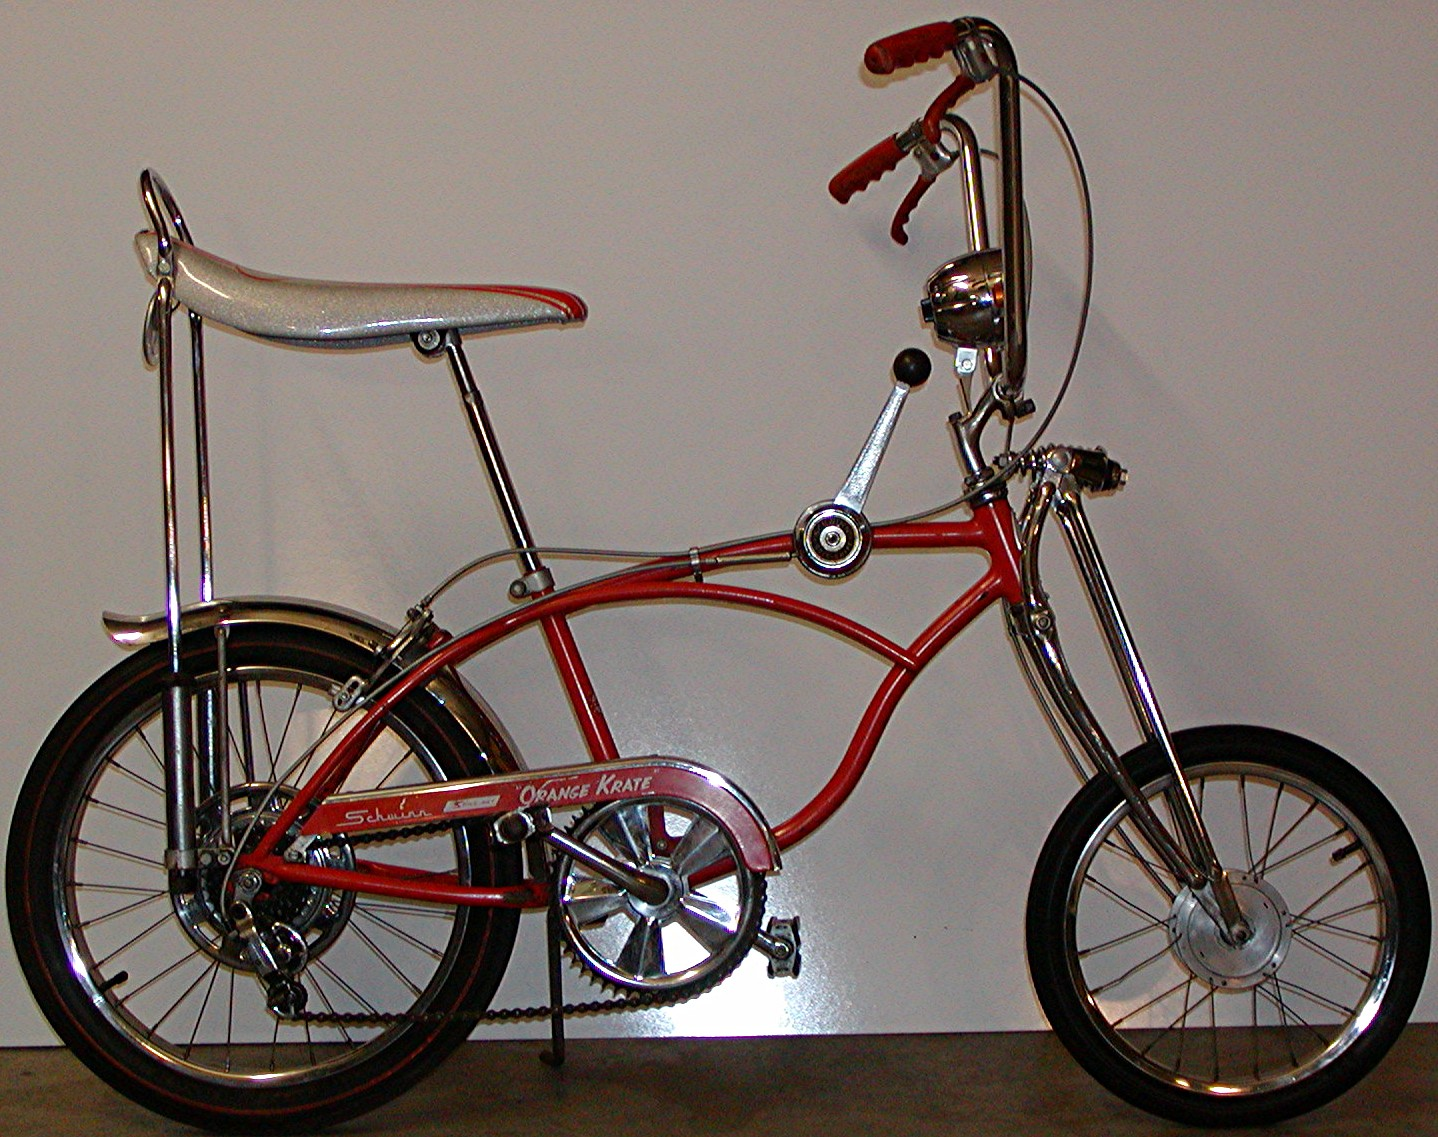 Bikes Schwinn Raleigh Dealers Wheelie bike